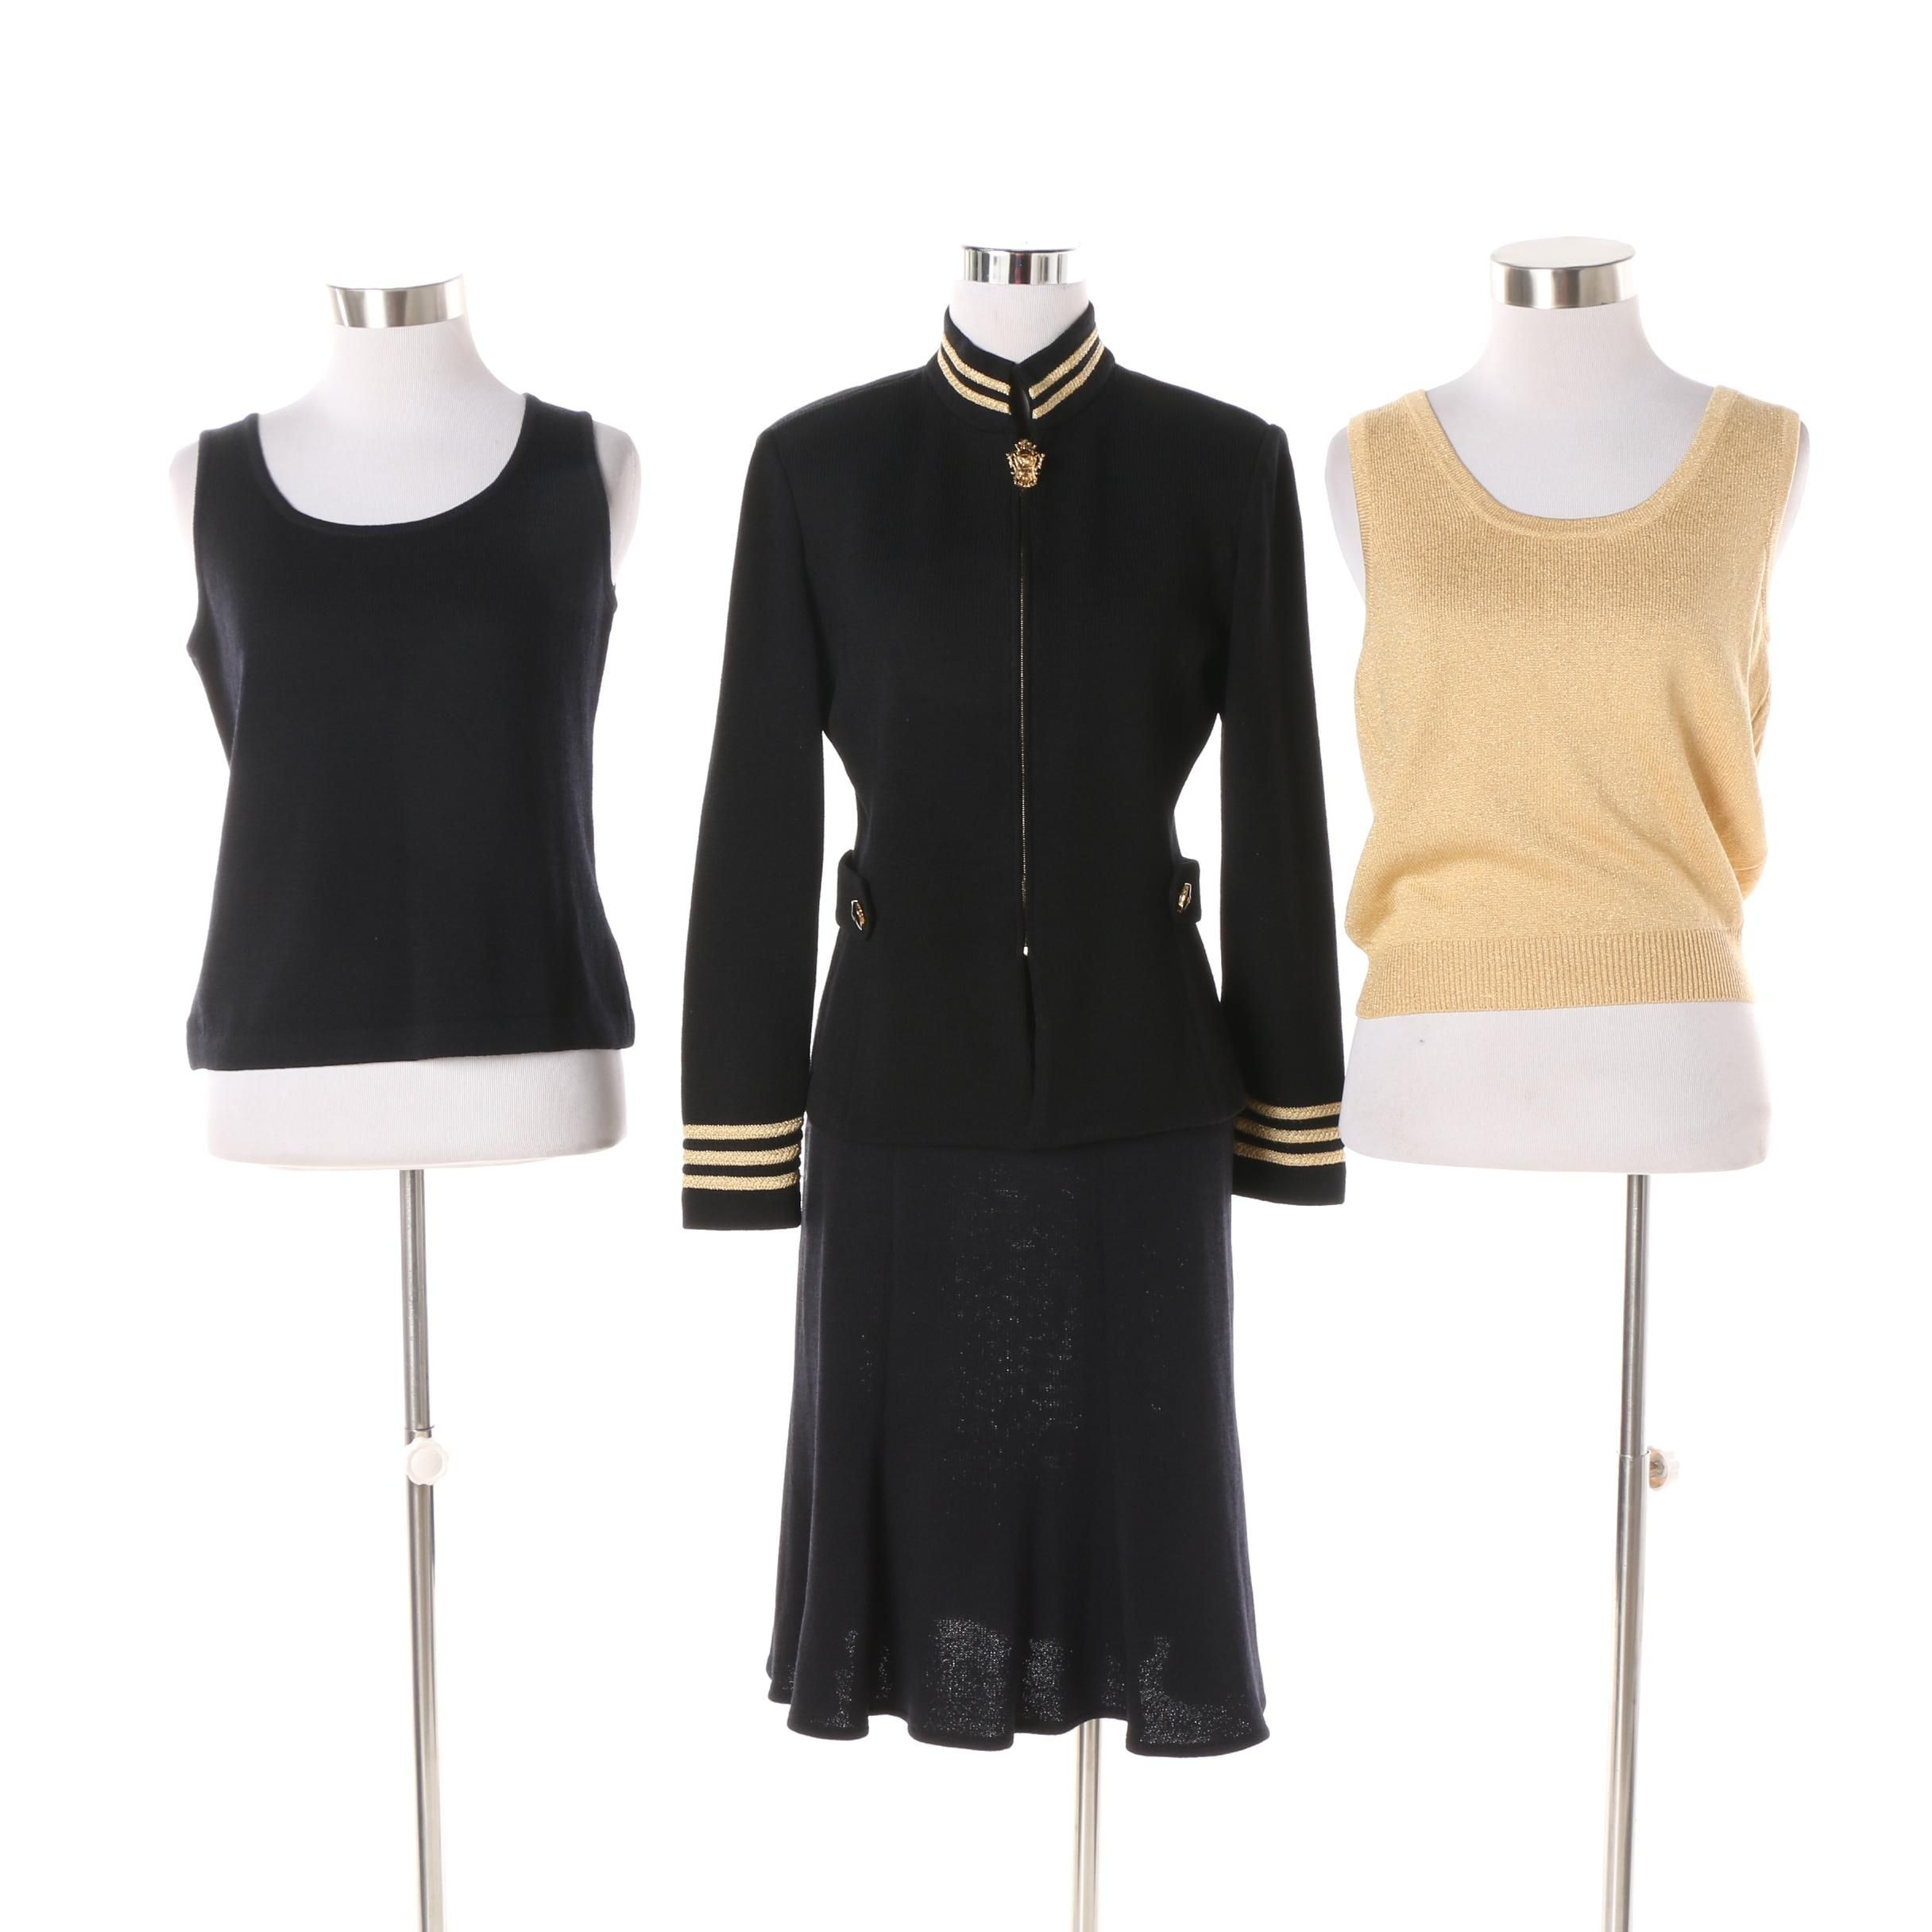 St. John Brand Clothing featuring Jacket and Skirt Set